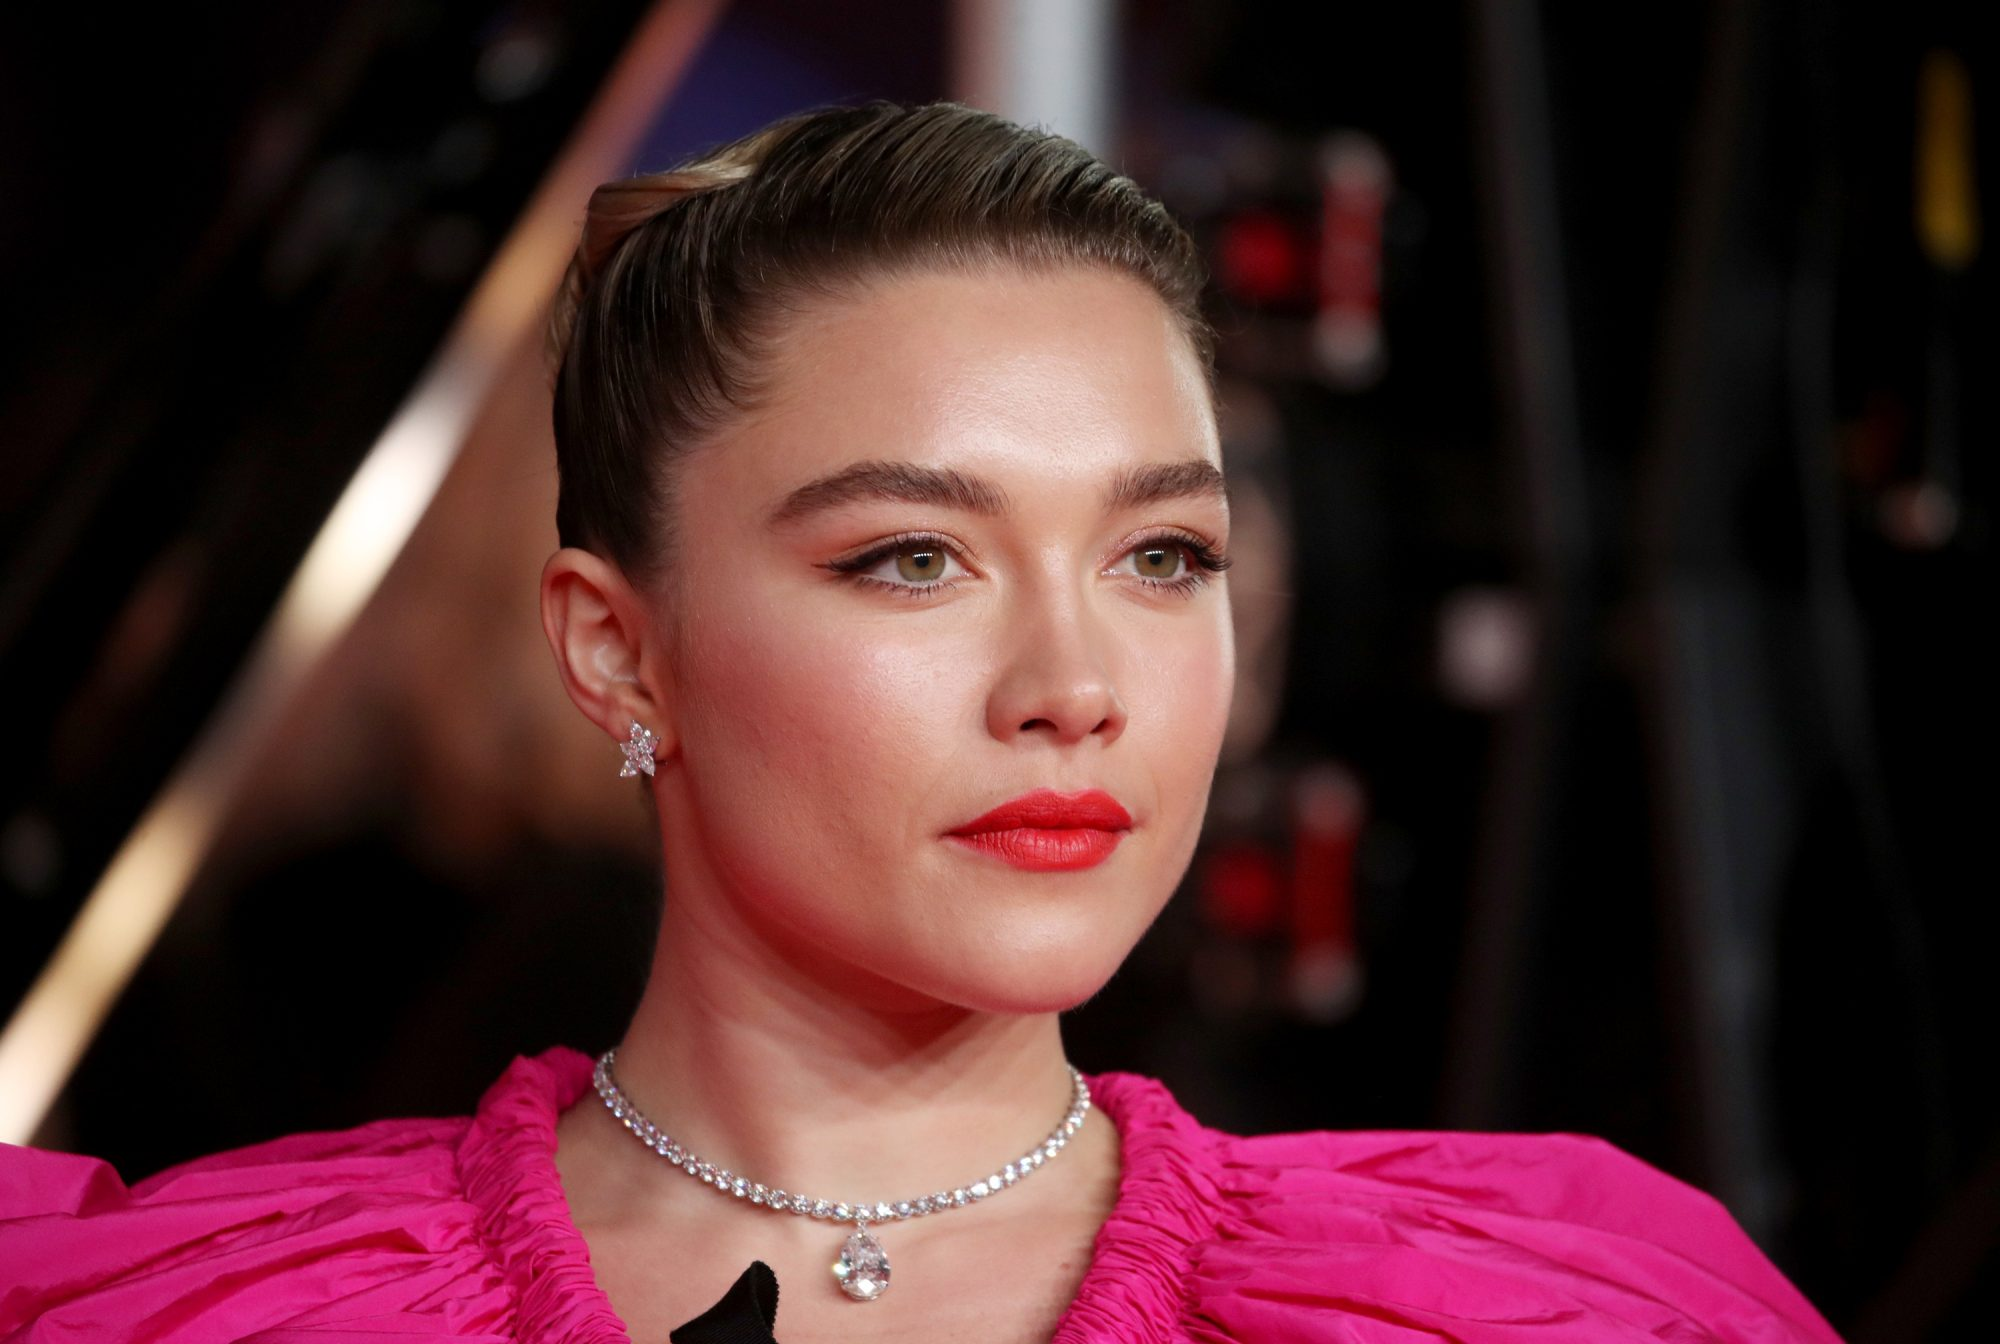 This $5 Mascara Is the Secret to Florence Pugh's Red-Carpet Looks